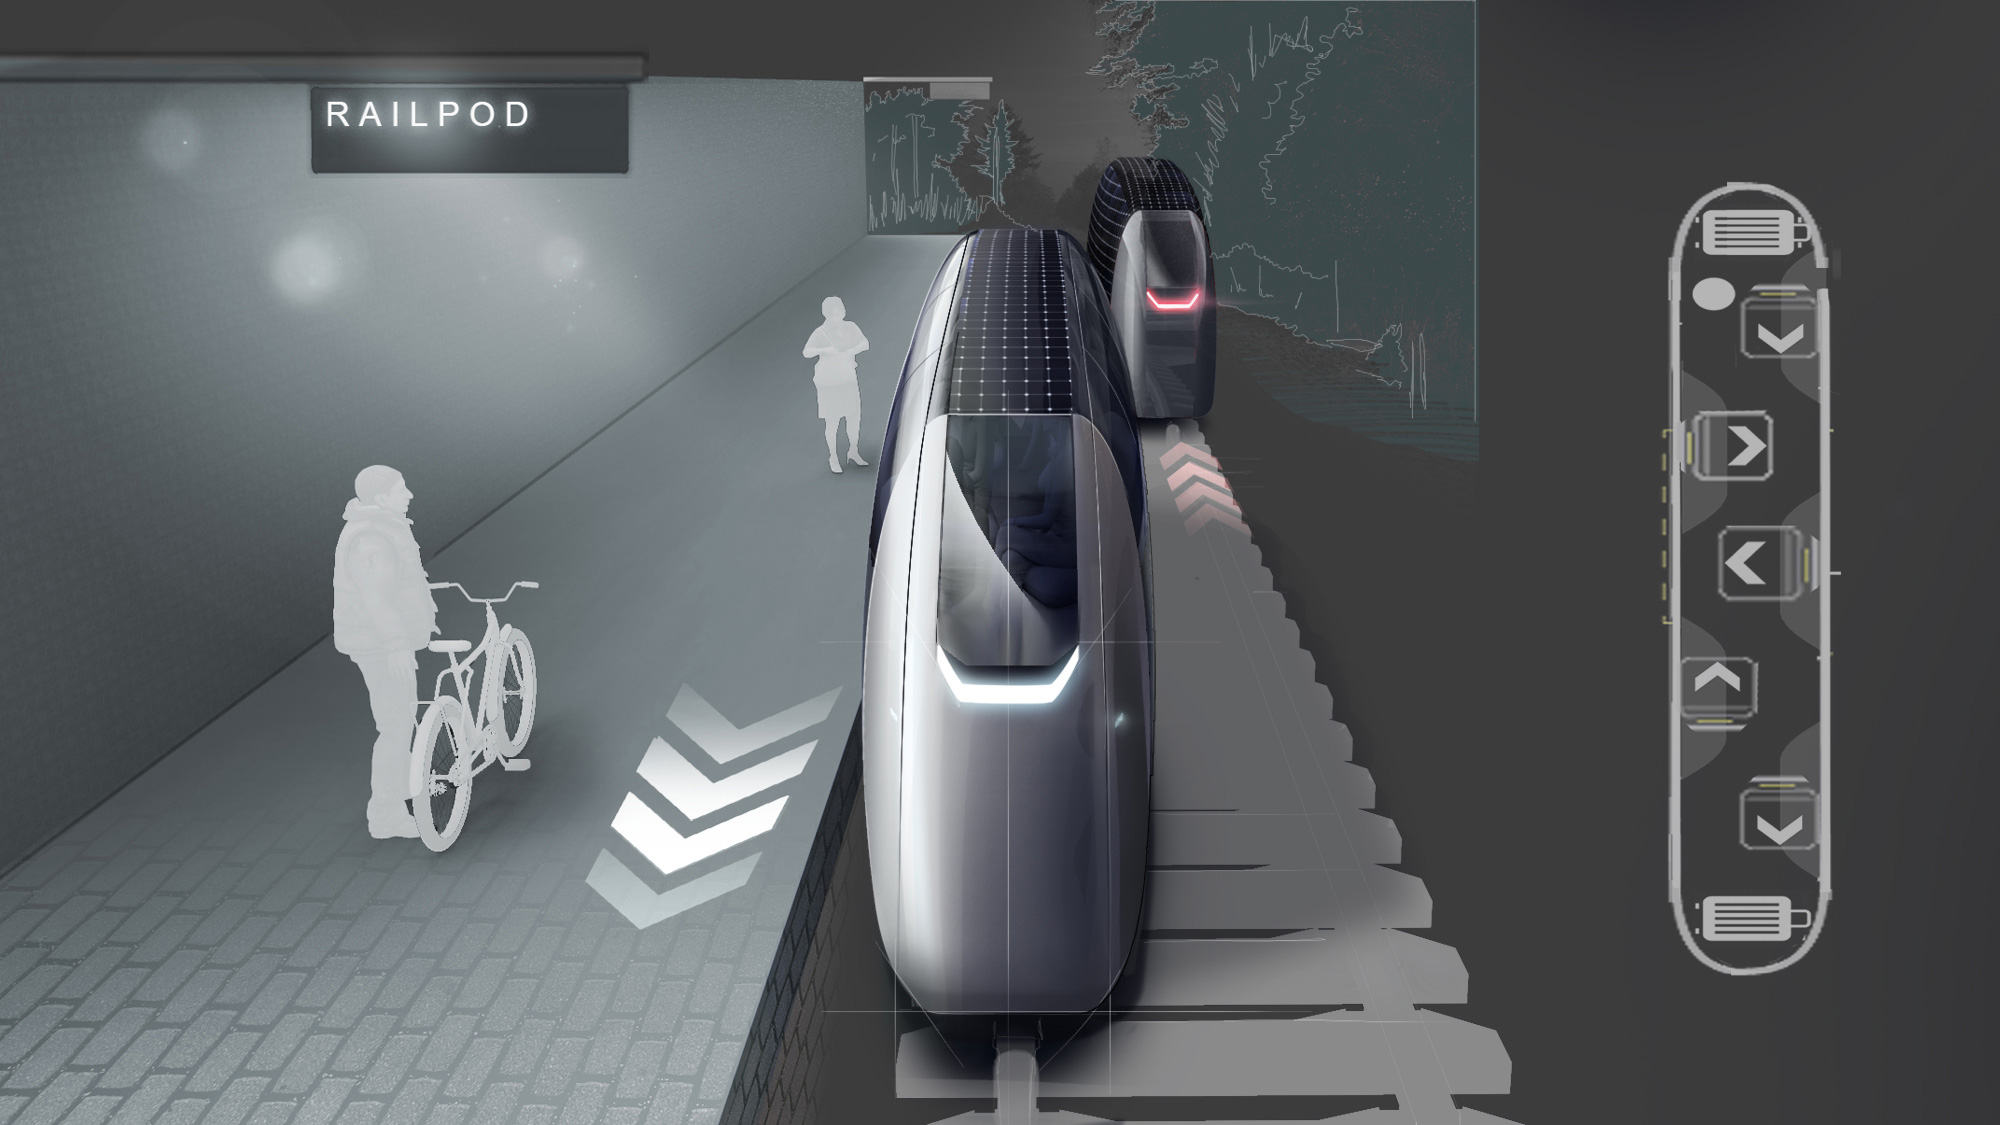 Railpod - More on how multimodal mobility opens up new opportunities